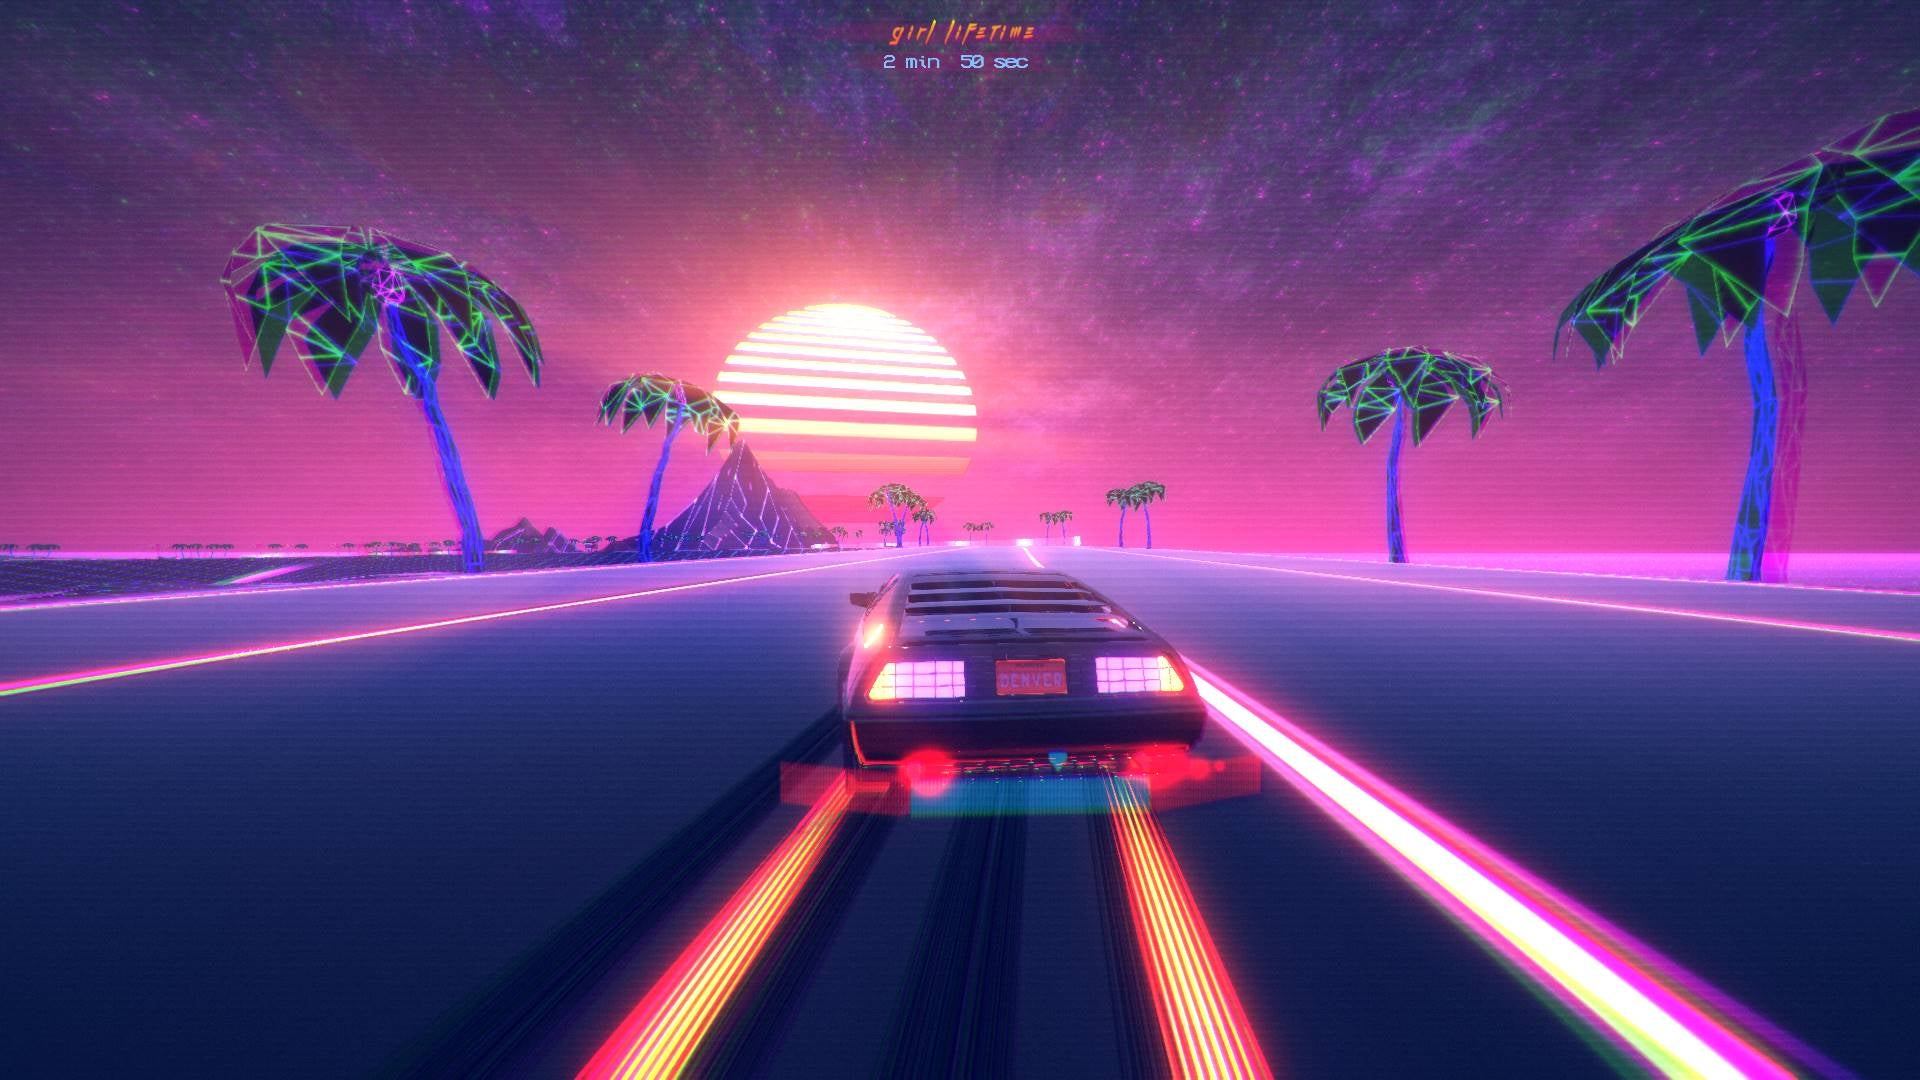 Popular Driving Game OutDrive Just Isn't Very Good